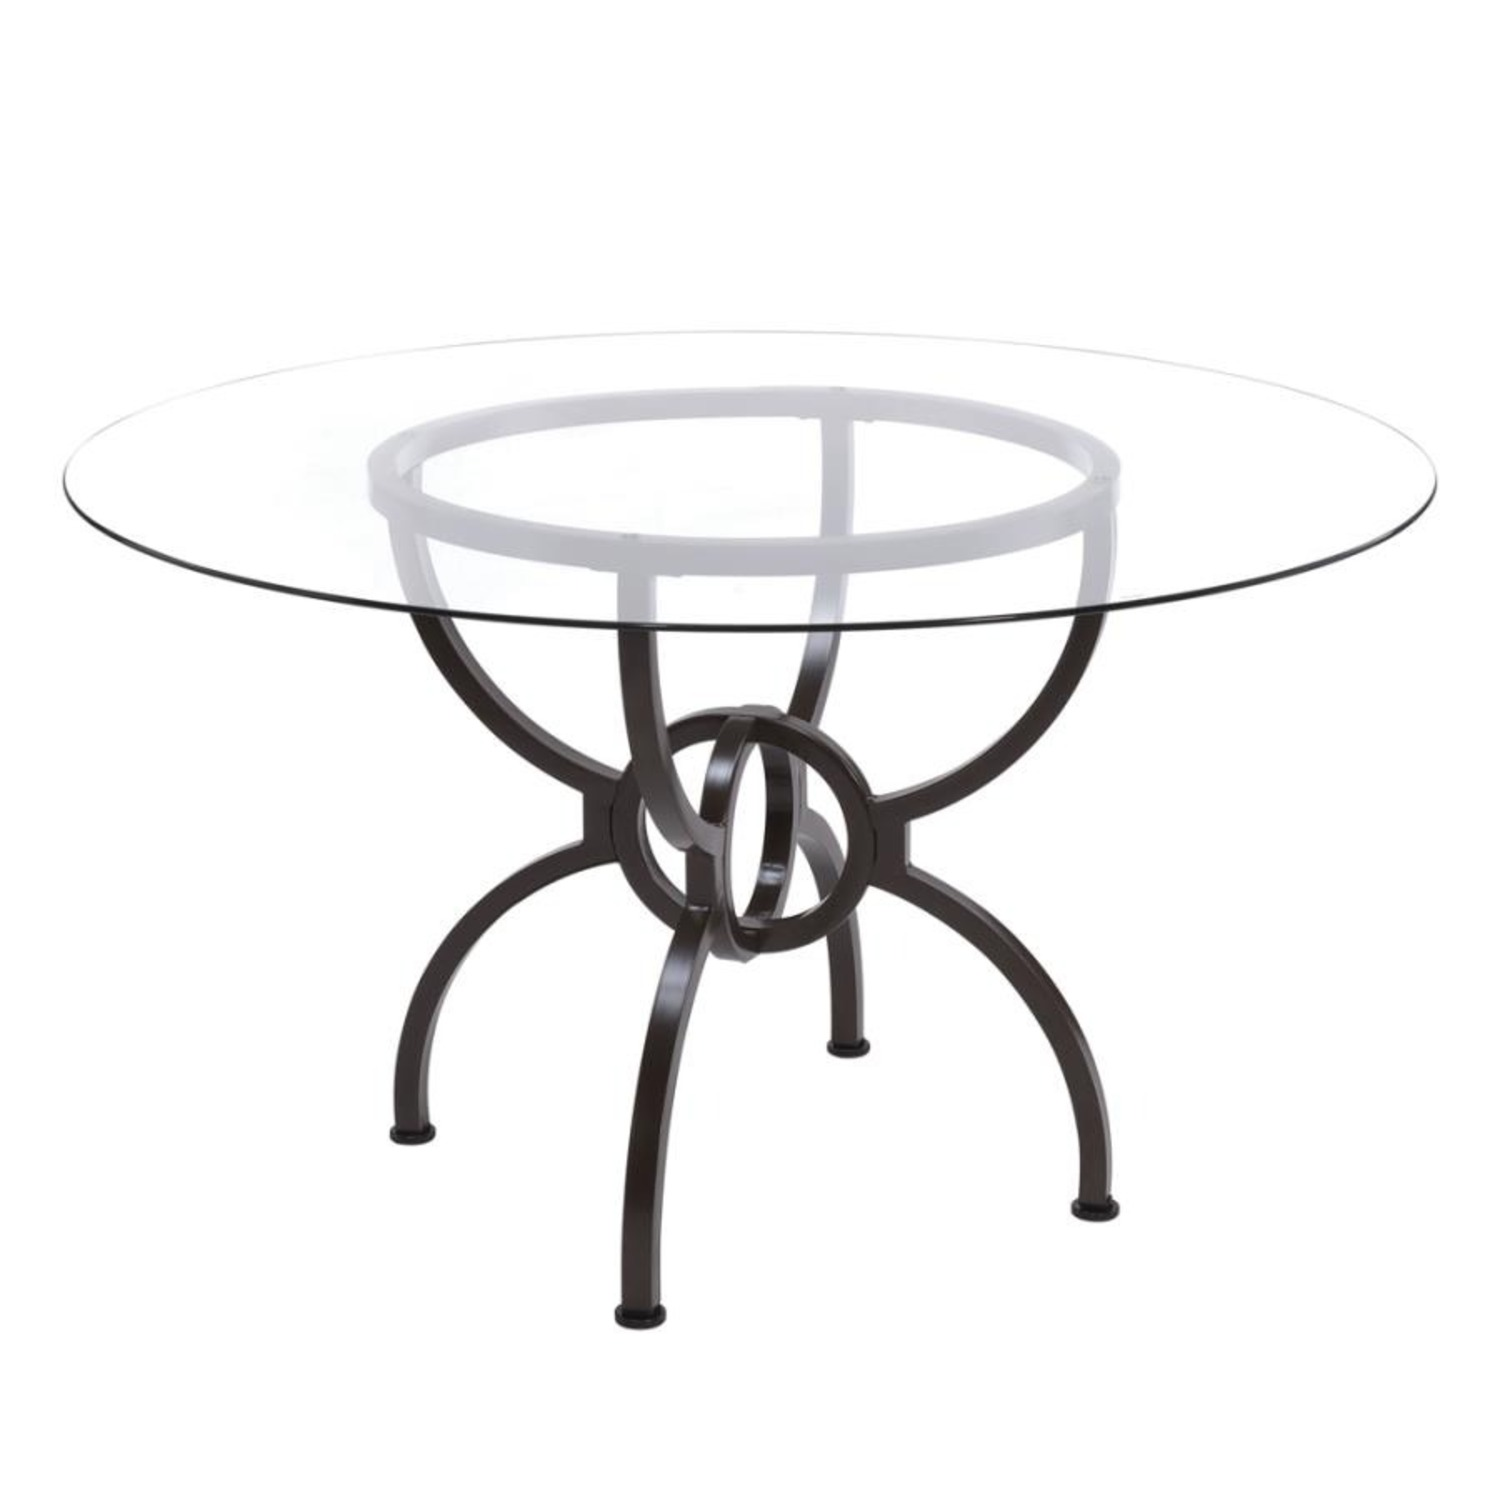 Dining Table In Gunmetal Base W/ Clear Glass Top - image-0